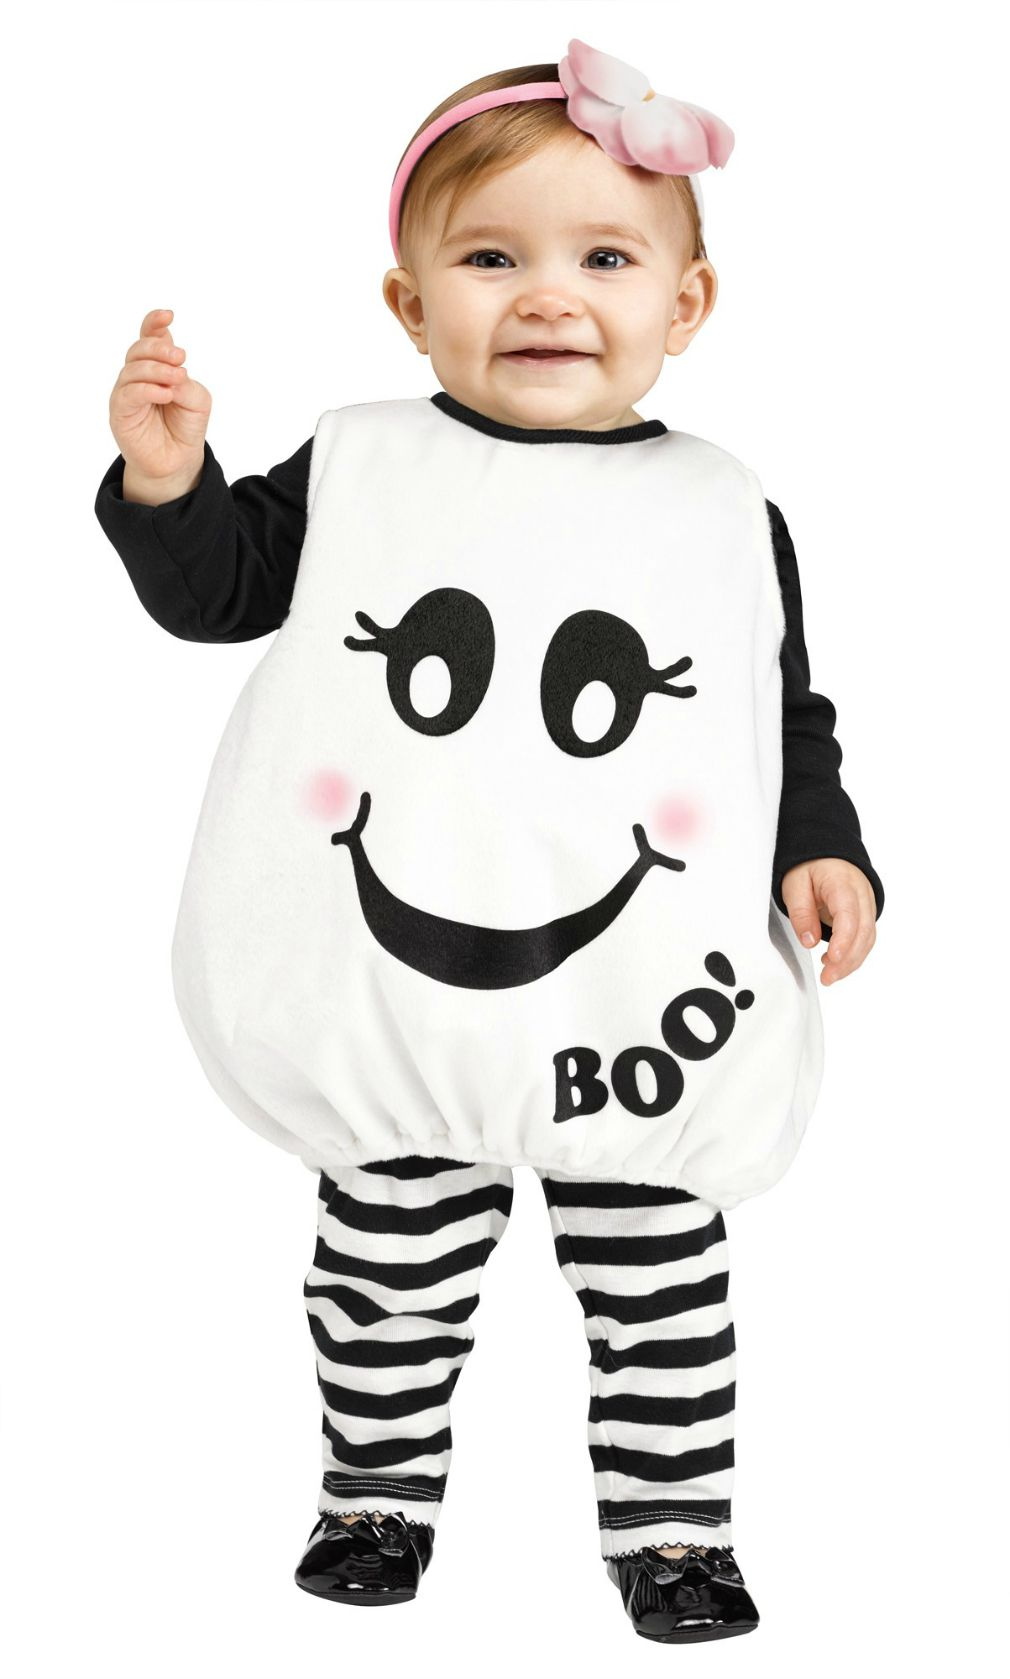 Baby Boo Infant Ghost Costume  sc 1 st  In Fashion Kids & In Fashion Kids